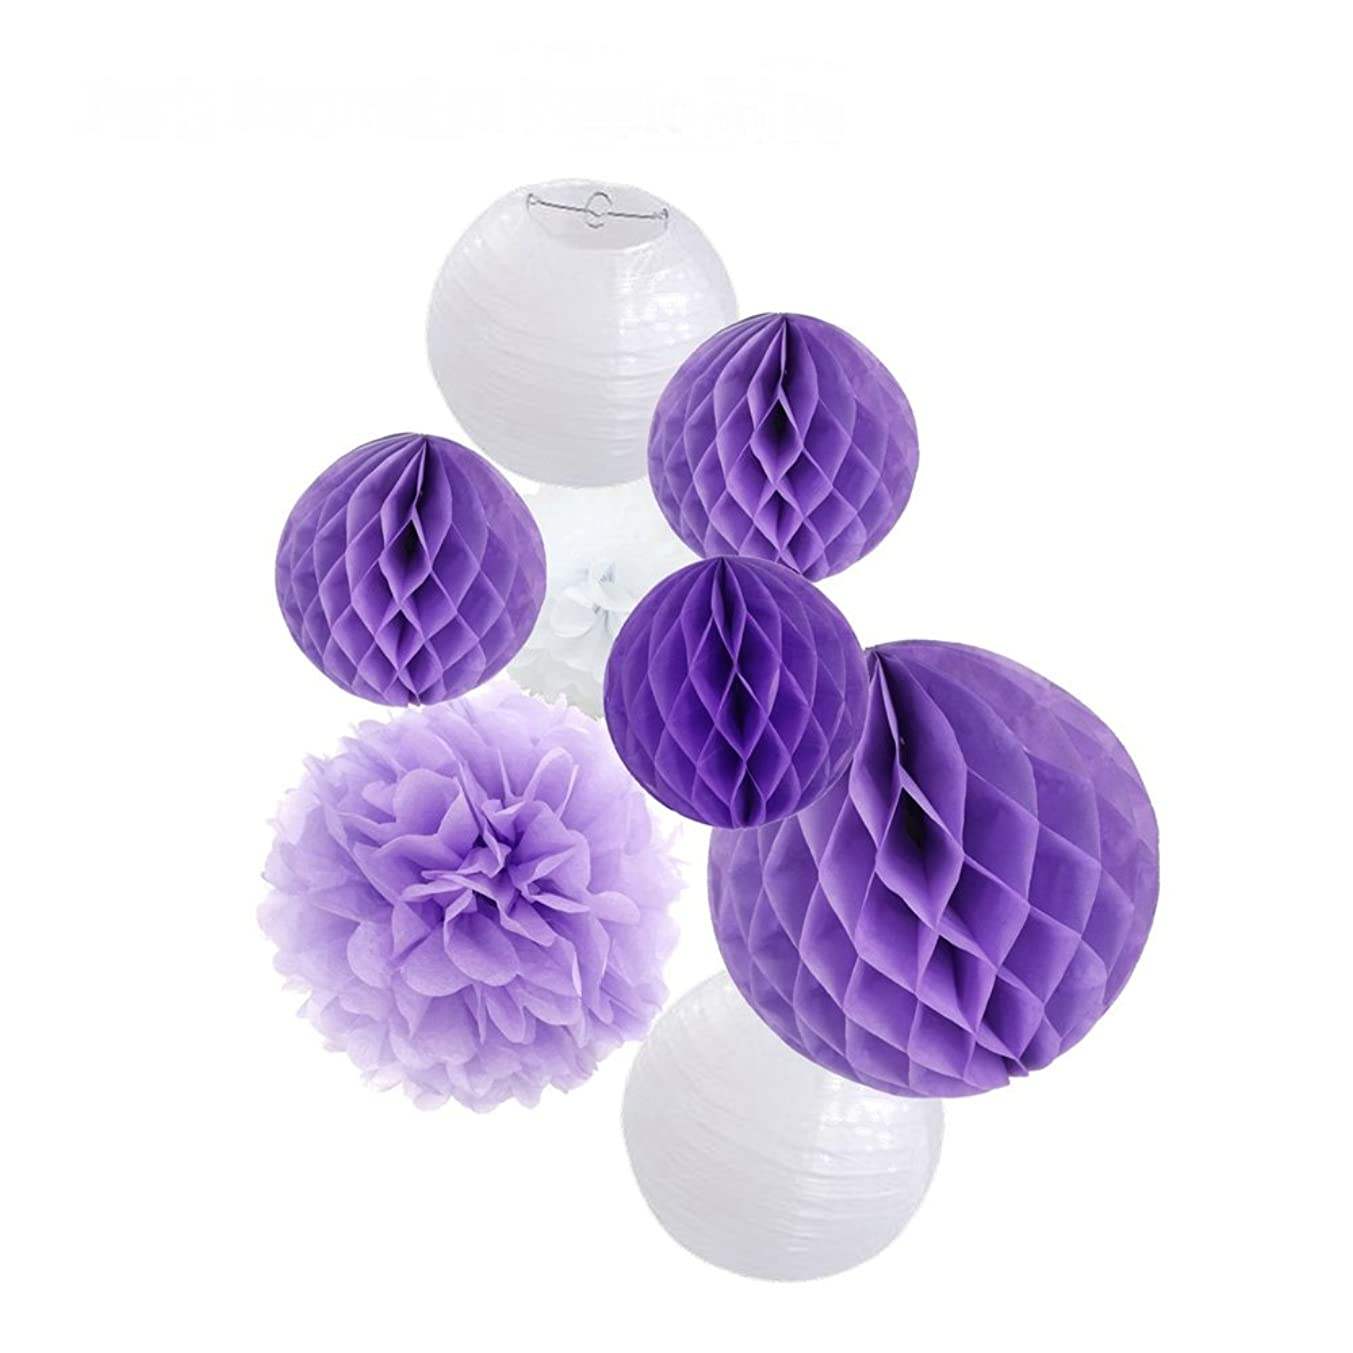 8pcs Tissue Paper Flowers Ball Pom Poms Mixed Paper Lanterns Honeycomb Ball Craft Kit for Lavender Purple Themed Birthday Party Decor Baby Shower Decor Bridal Shower Decor Wedding Party Decorations